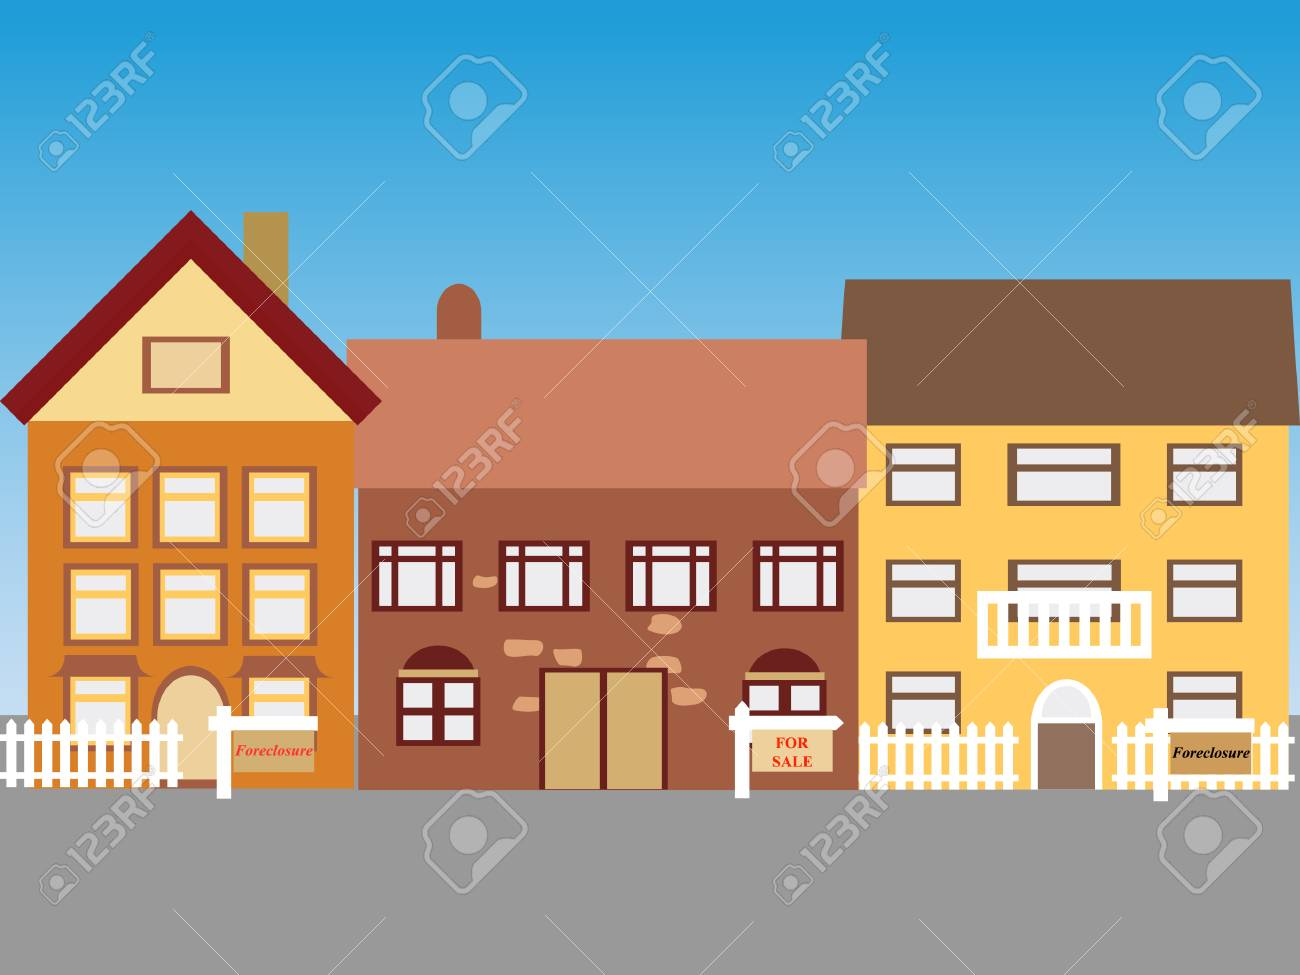 Foreclosed homes and homes for sale Stock Vector - 6743664